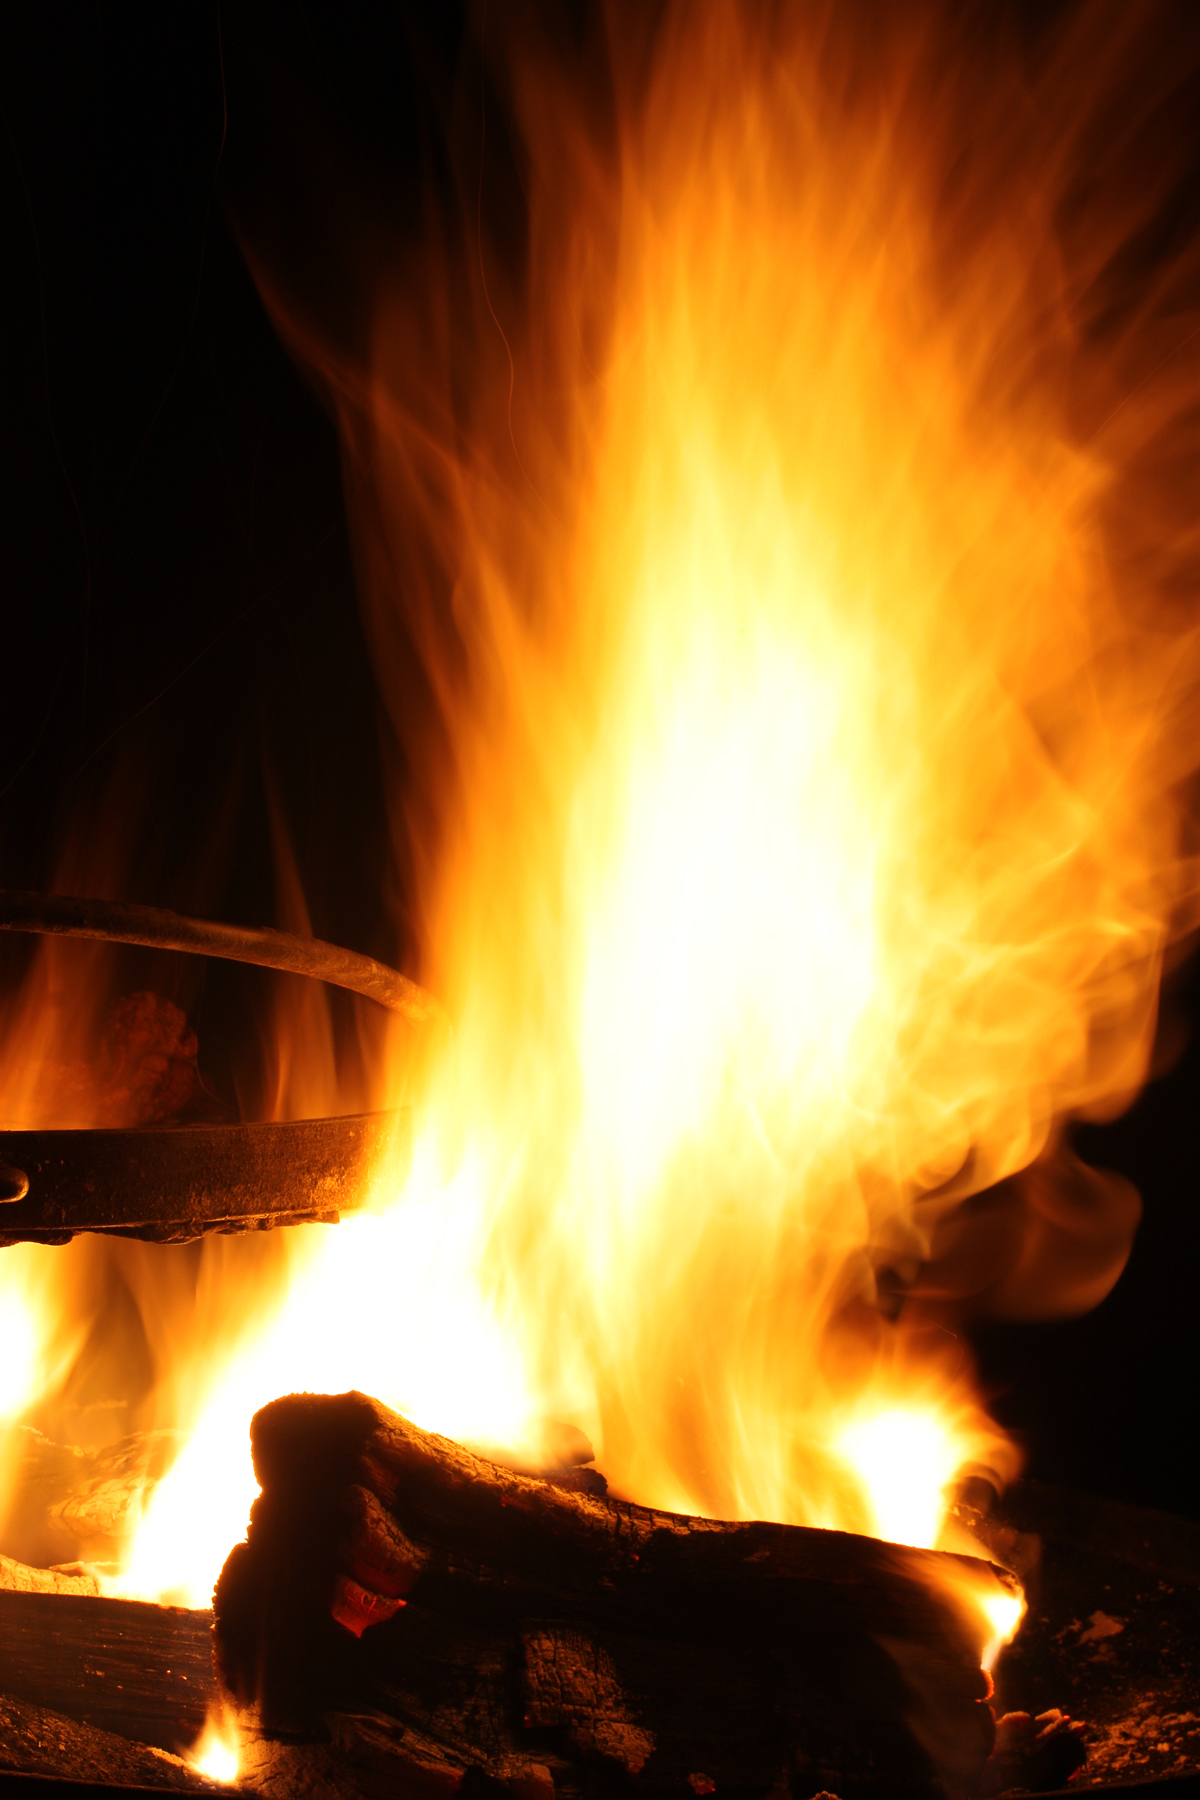 Burning Campfire, Abstract, Photograph, Logs, Long, HQ Photo